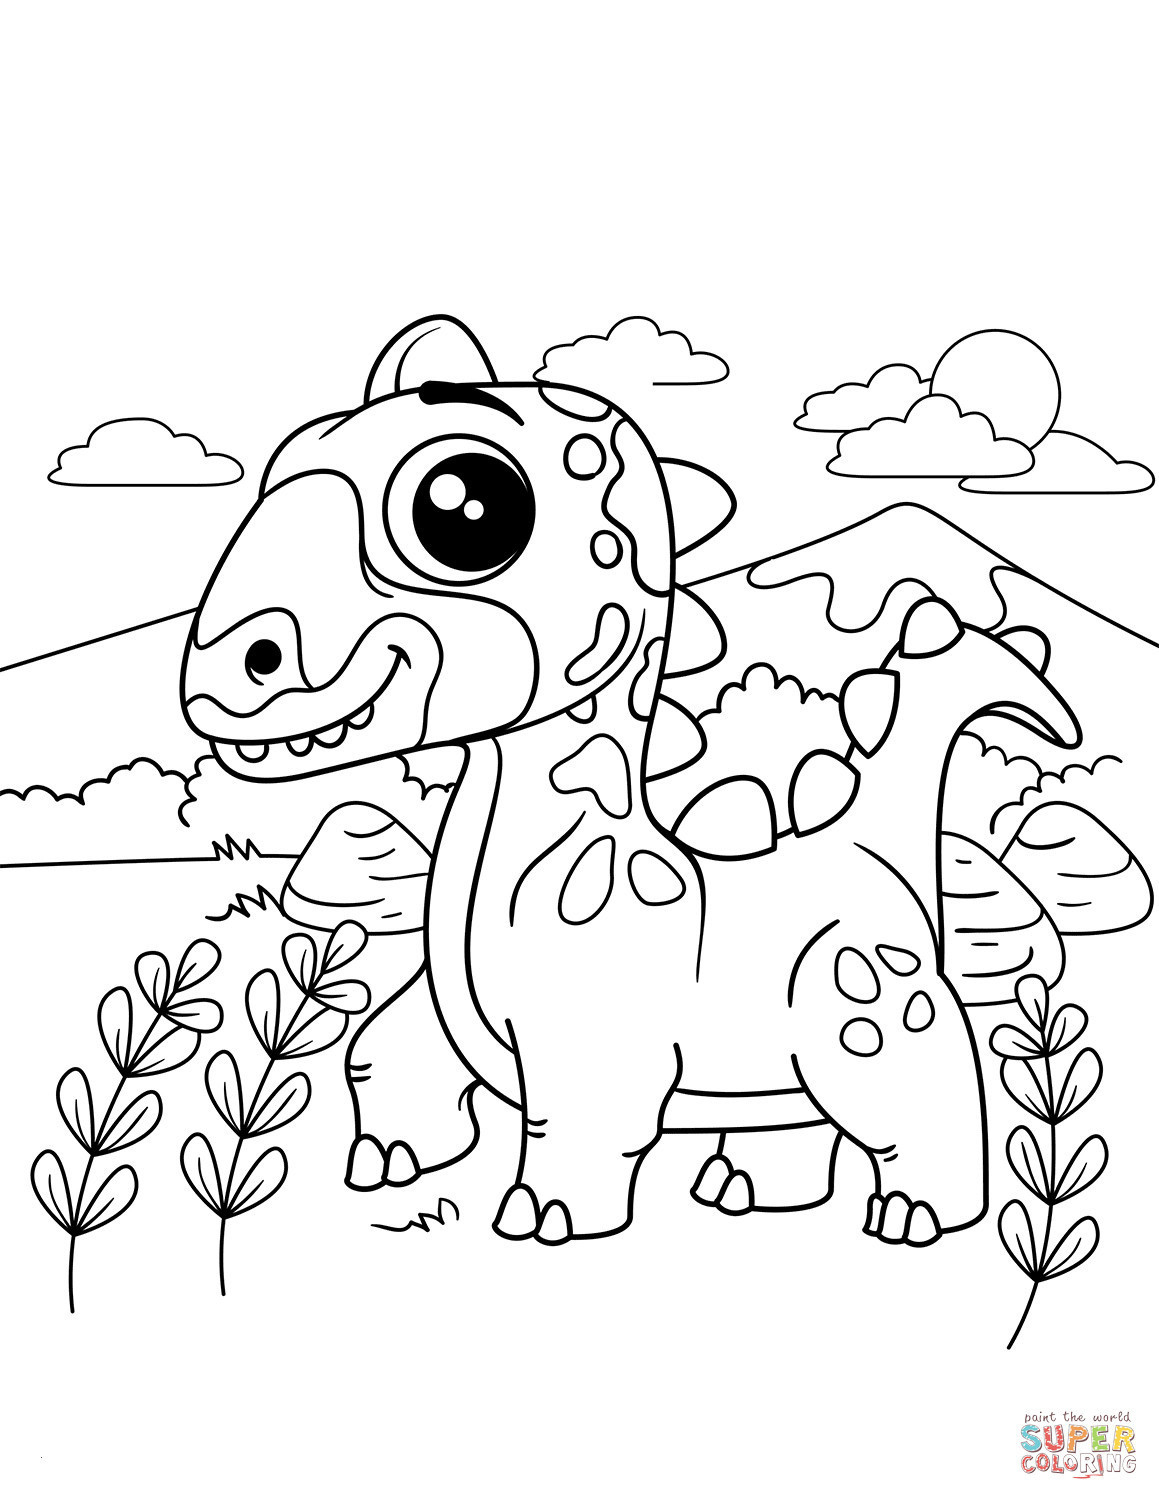 Free animal coloring pages for kids free coloring pages animals printable fresh 41 fresh image